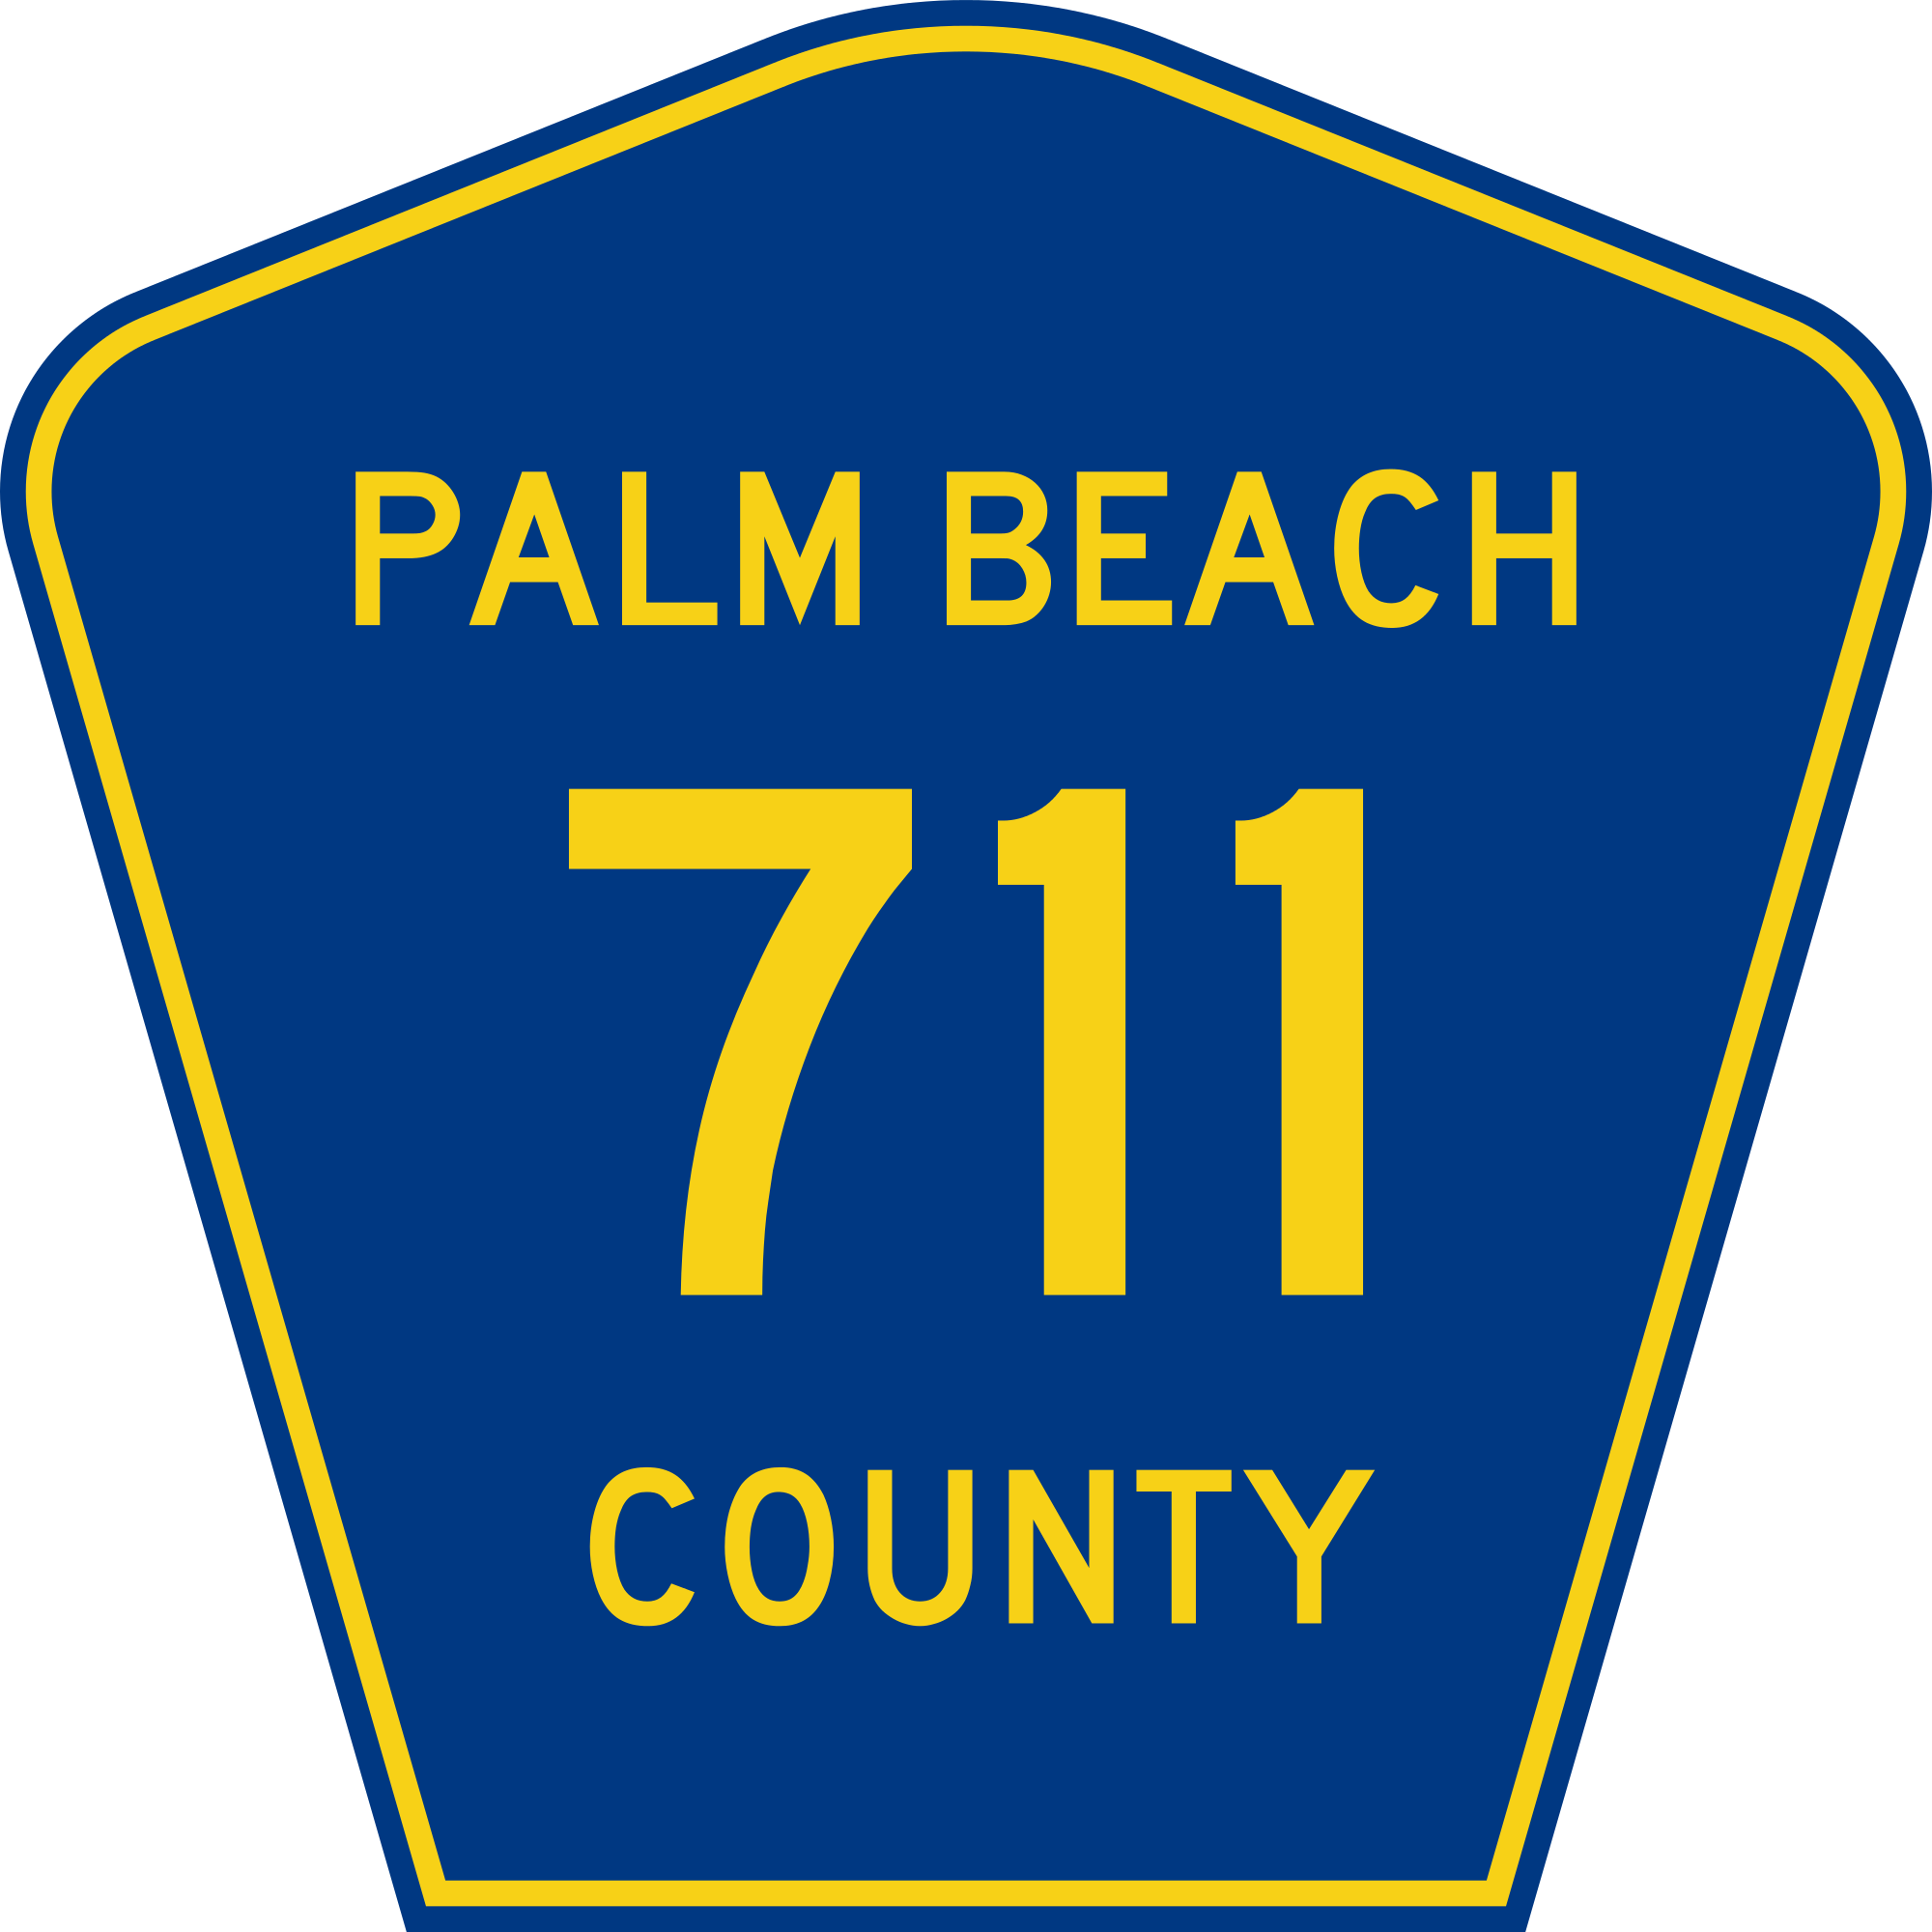 Palm Beach svg #5, Download drawings